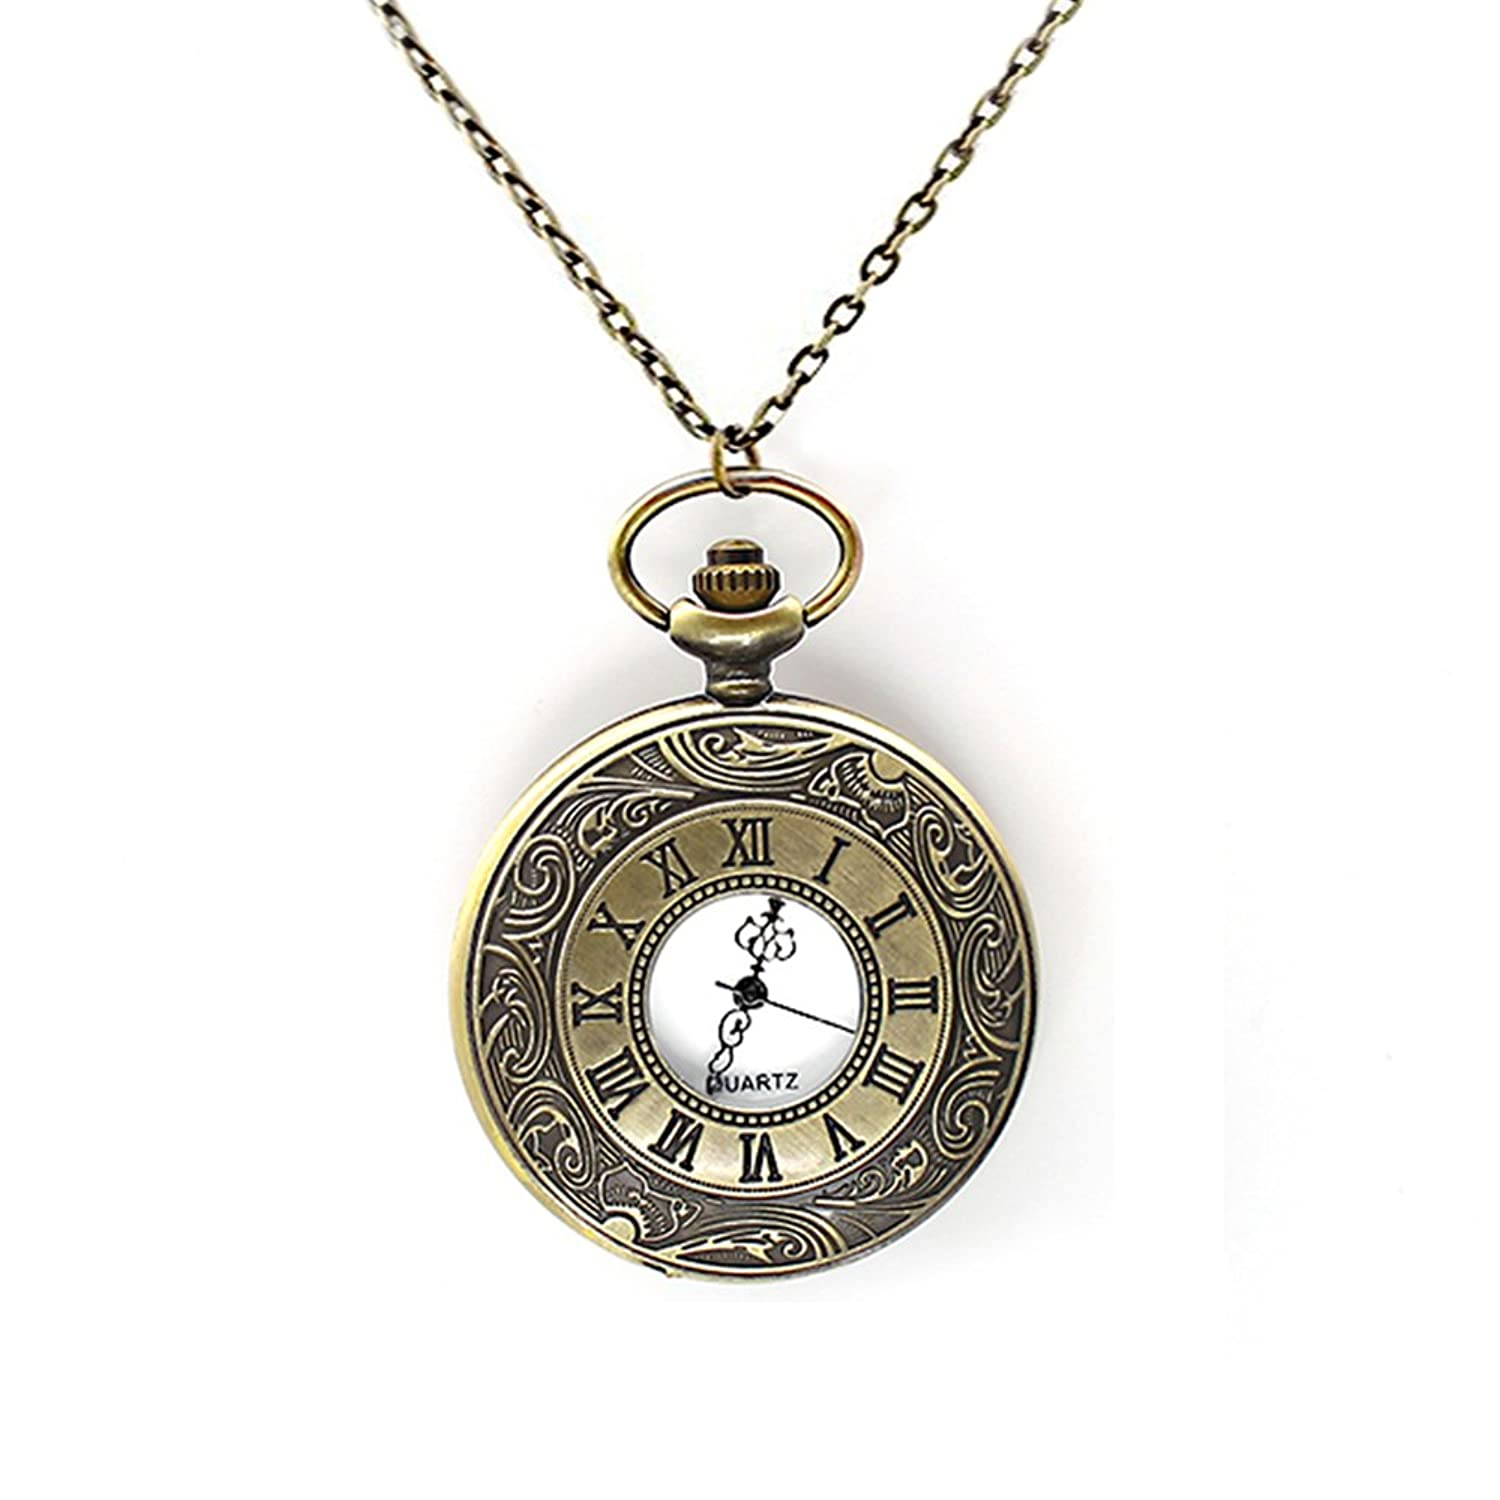 largeimages zoom res loading hero hi topic pendant product pdp pocket watch necklace celestial blackheart hot